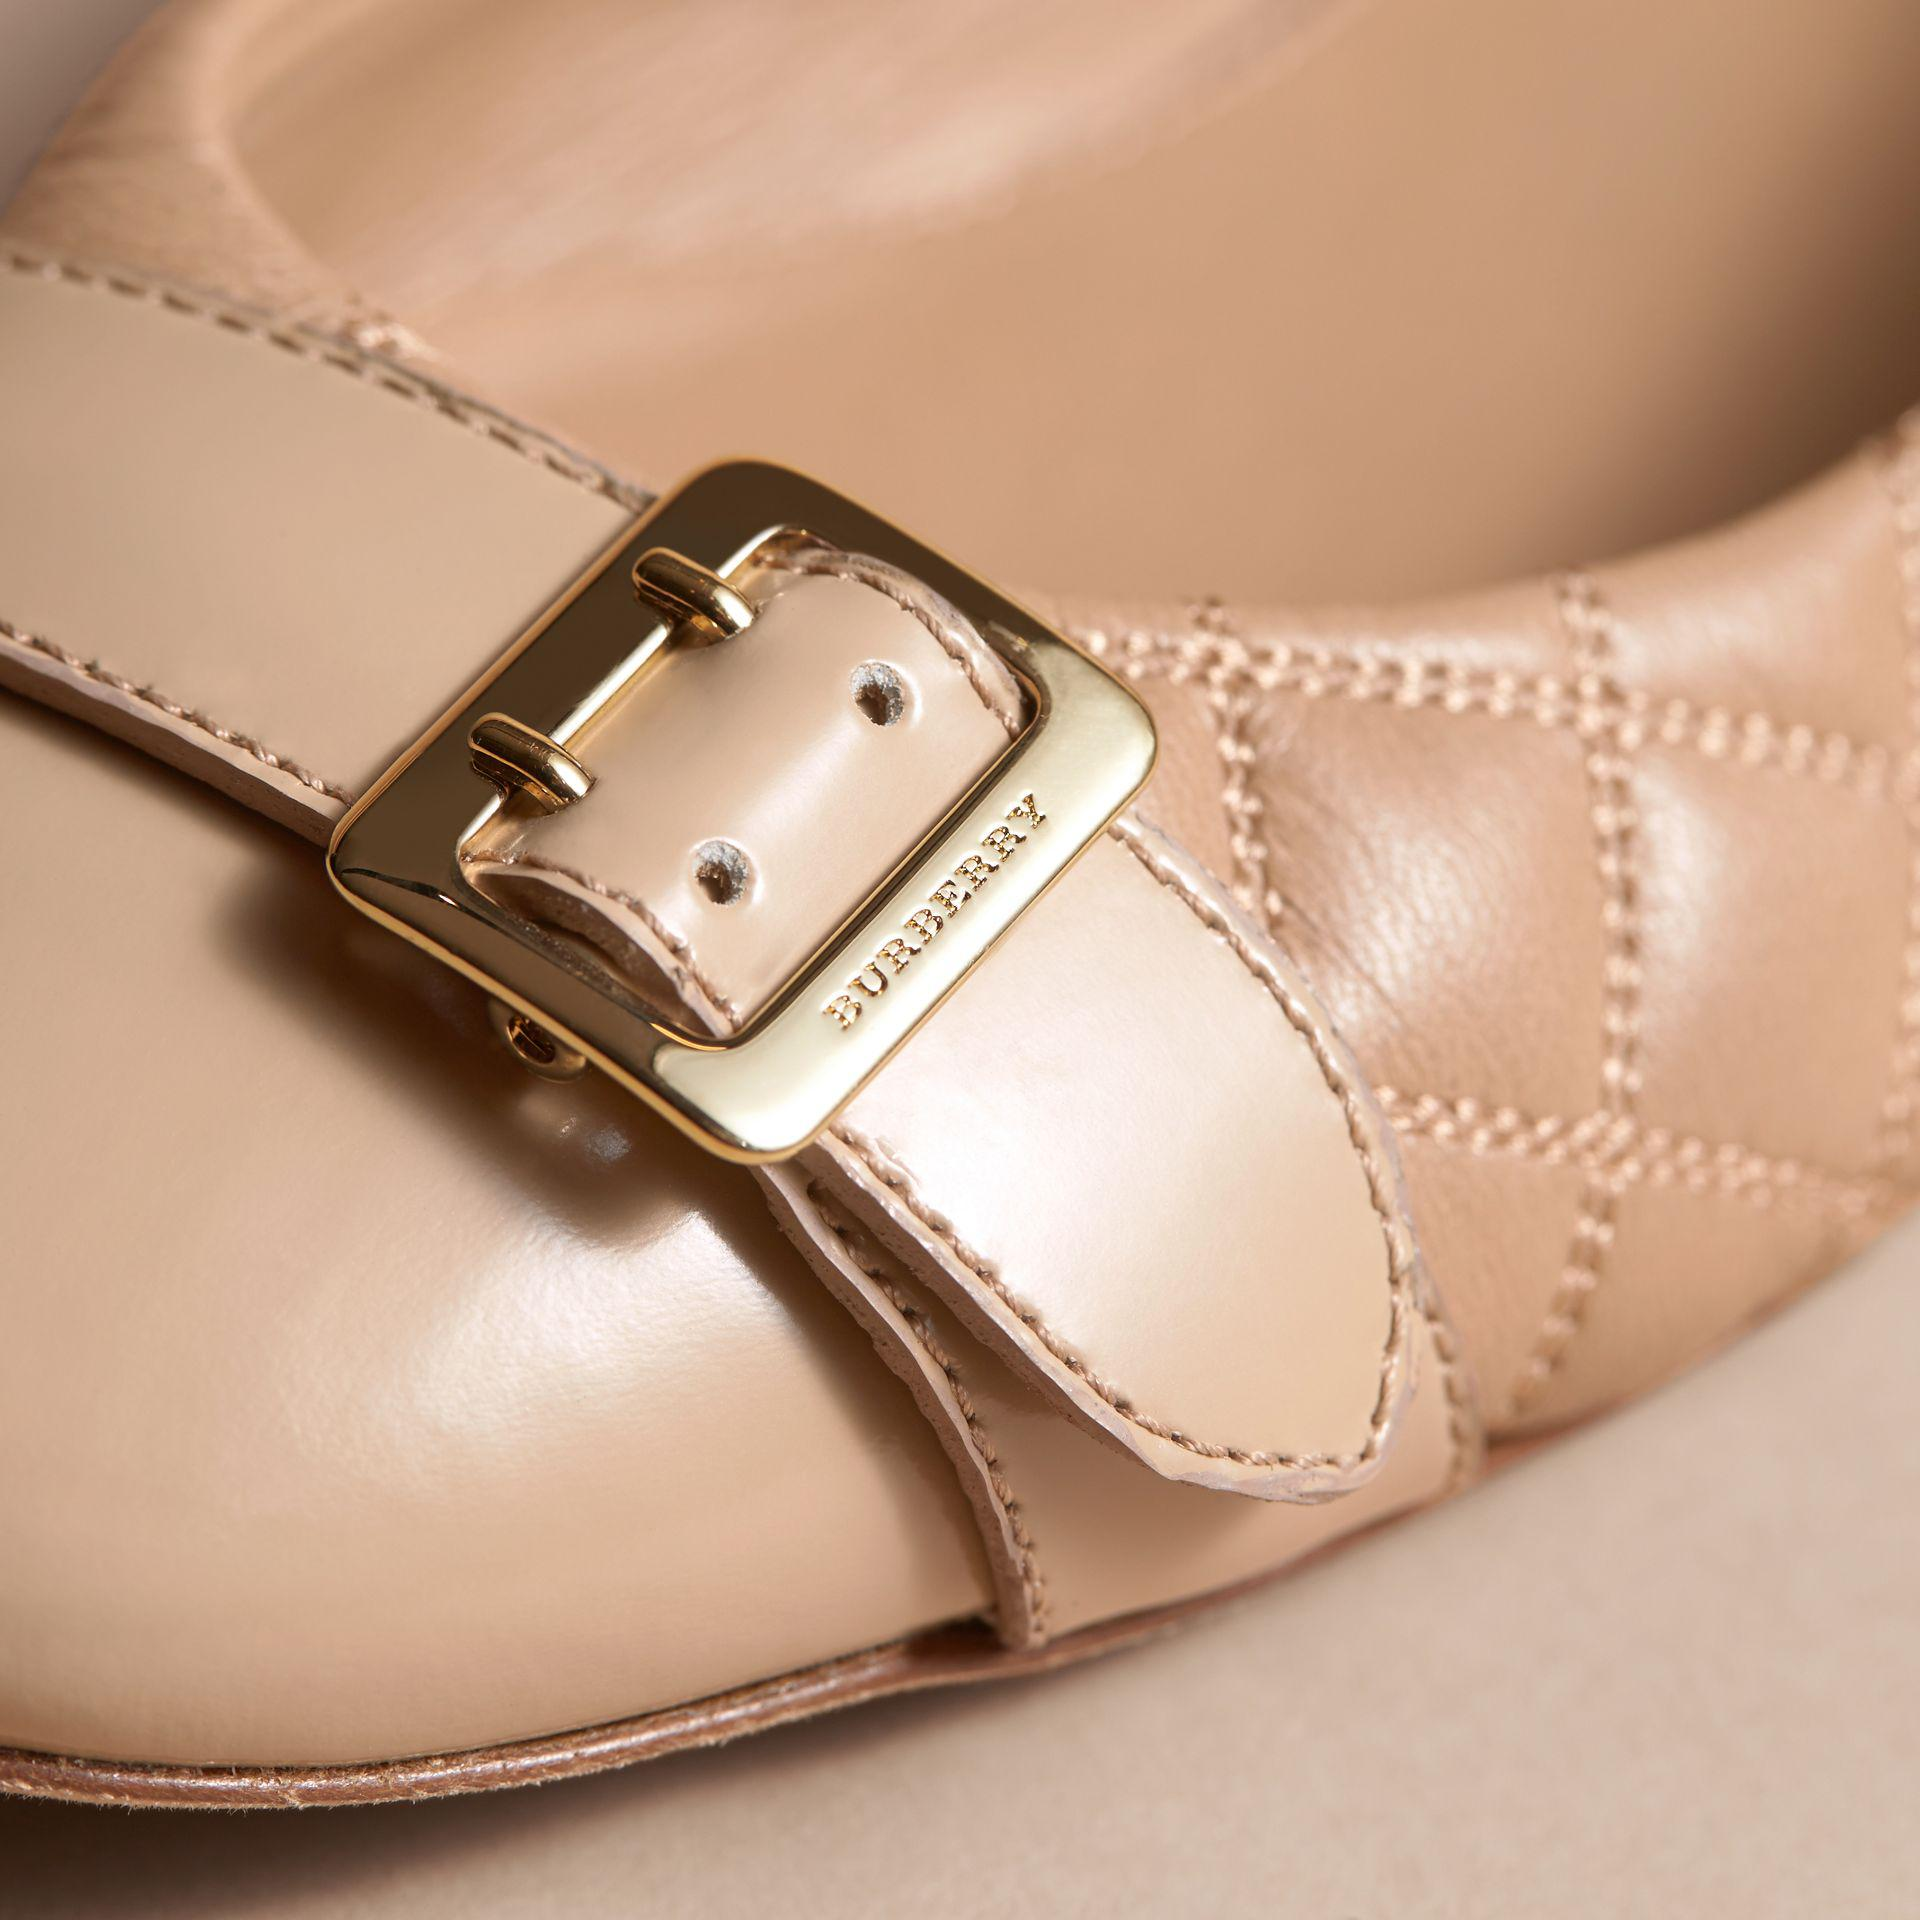 Cheap Sale Limited Edition Burberry Quilted ballerinas Find Great Online Outlet 100% Guaranteed Outlet I77hCVhC